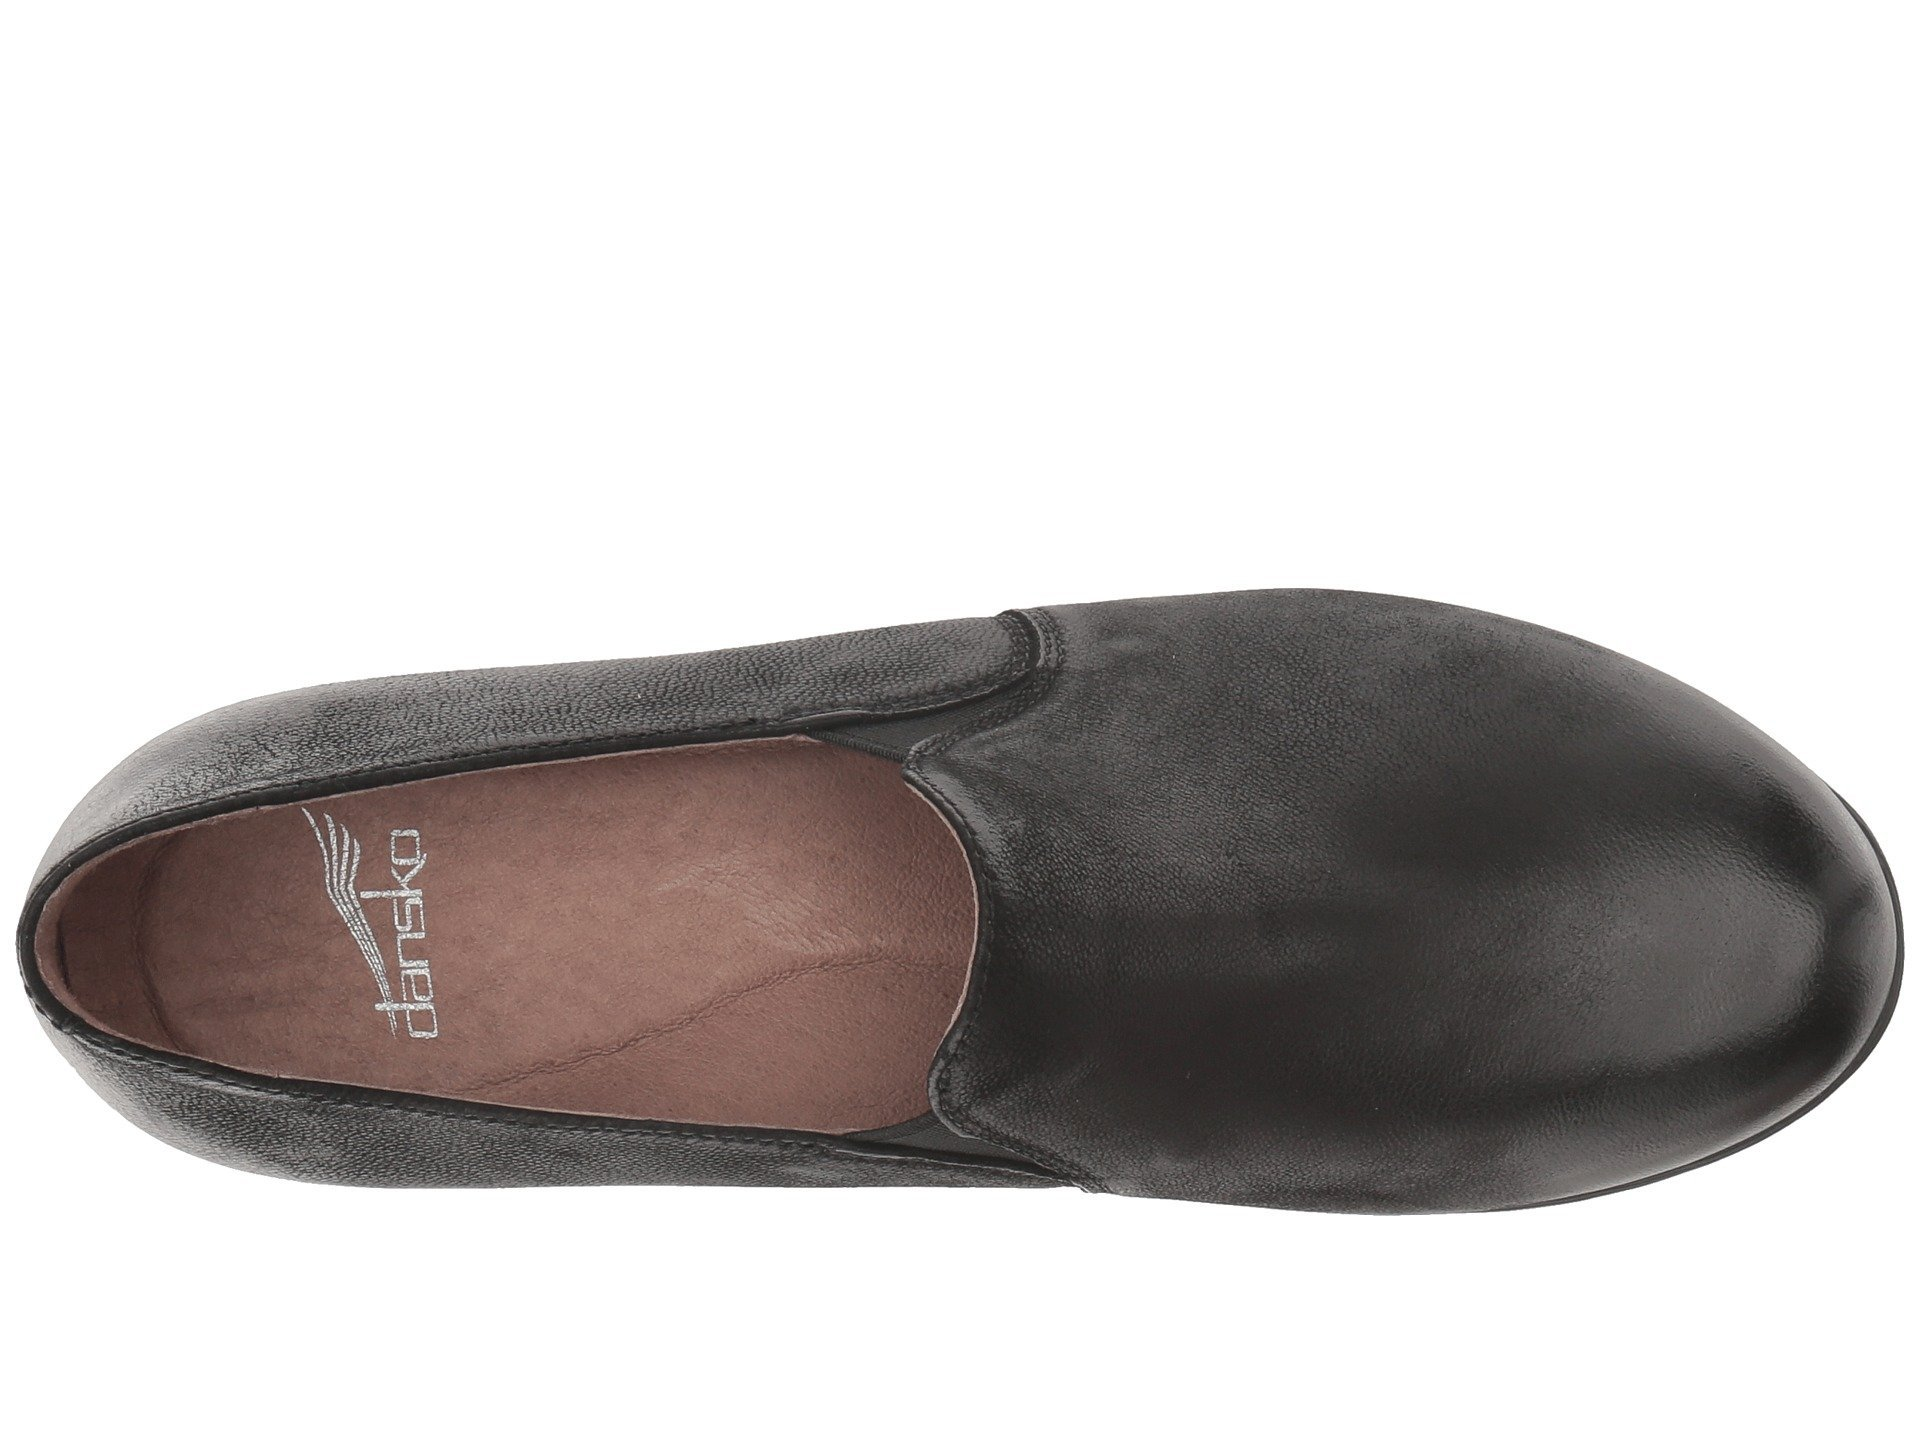 Dansko Robin Burnished Dansko Robin Nubuck Black qxHS0q5wE